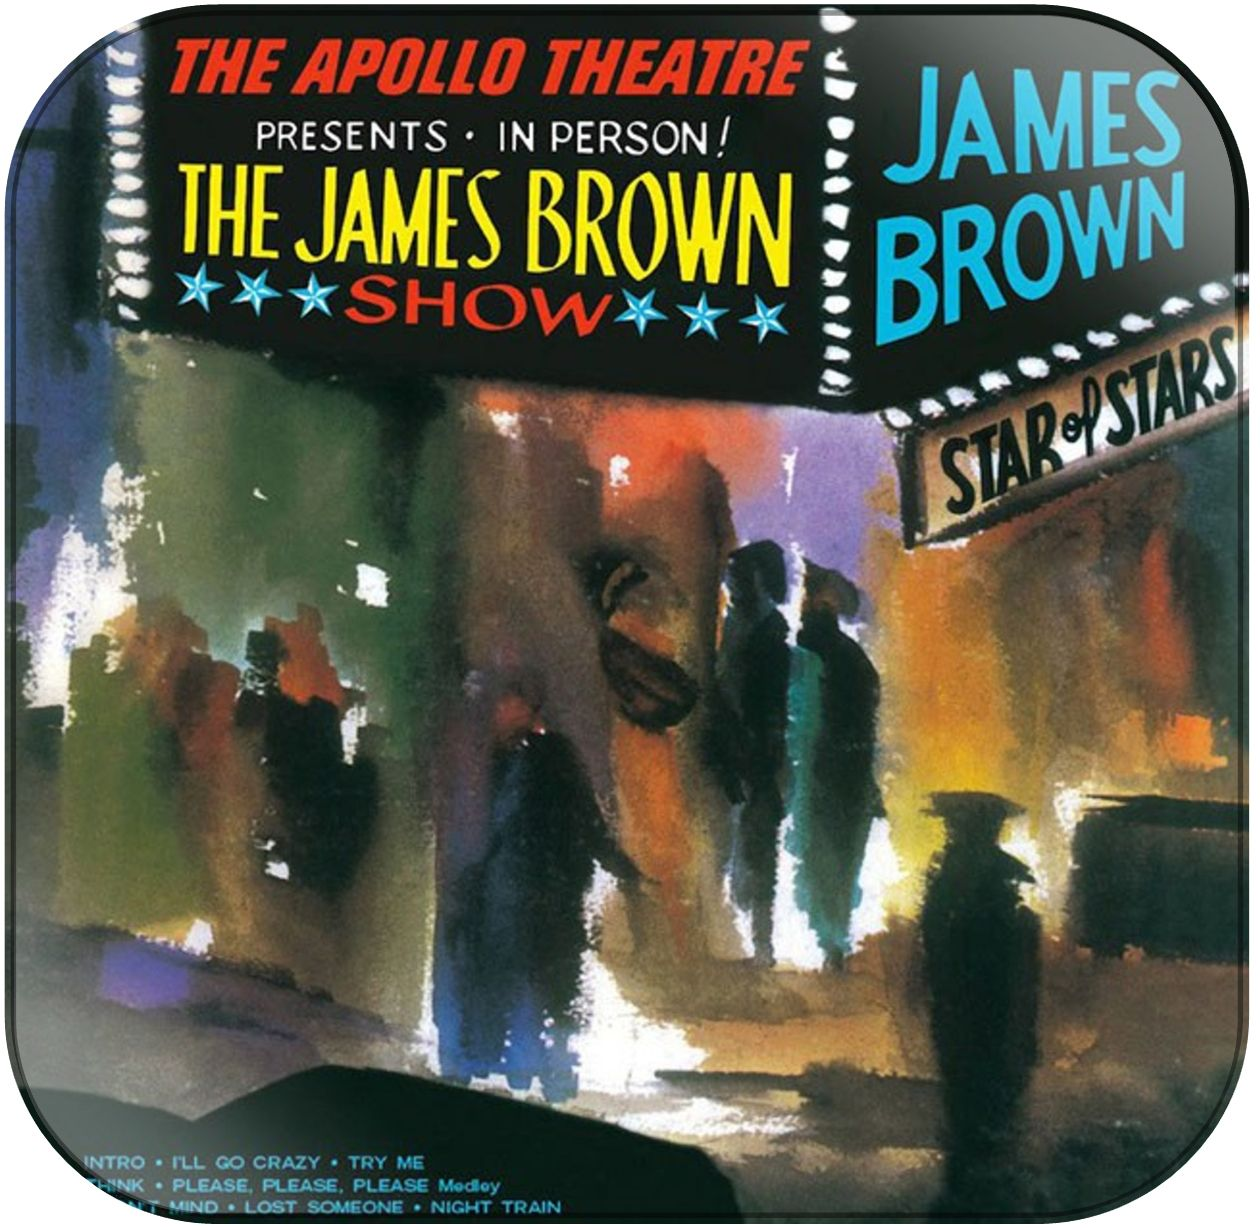 James Brown Live At The Apollo Album Cover Sticker Live At The